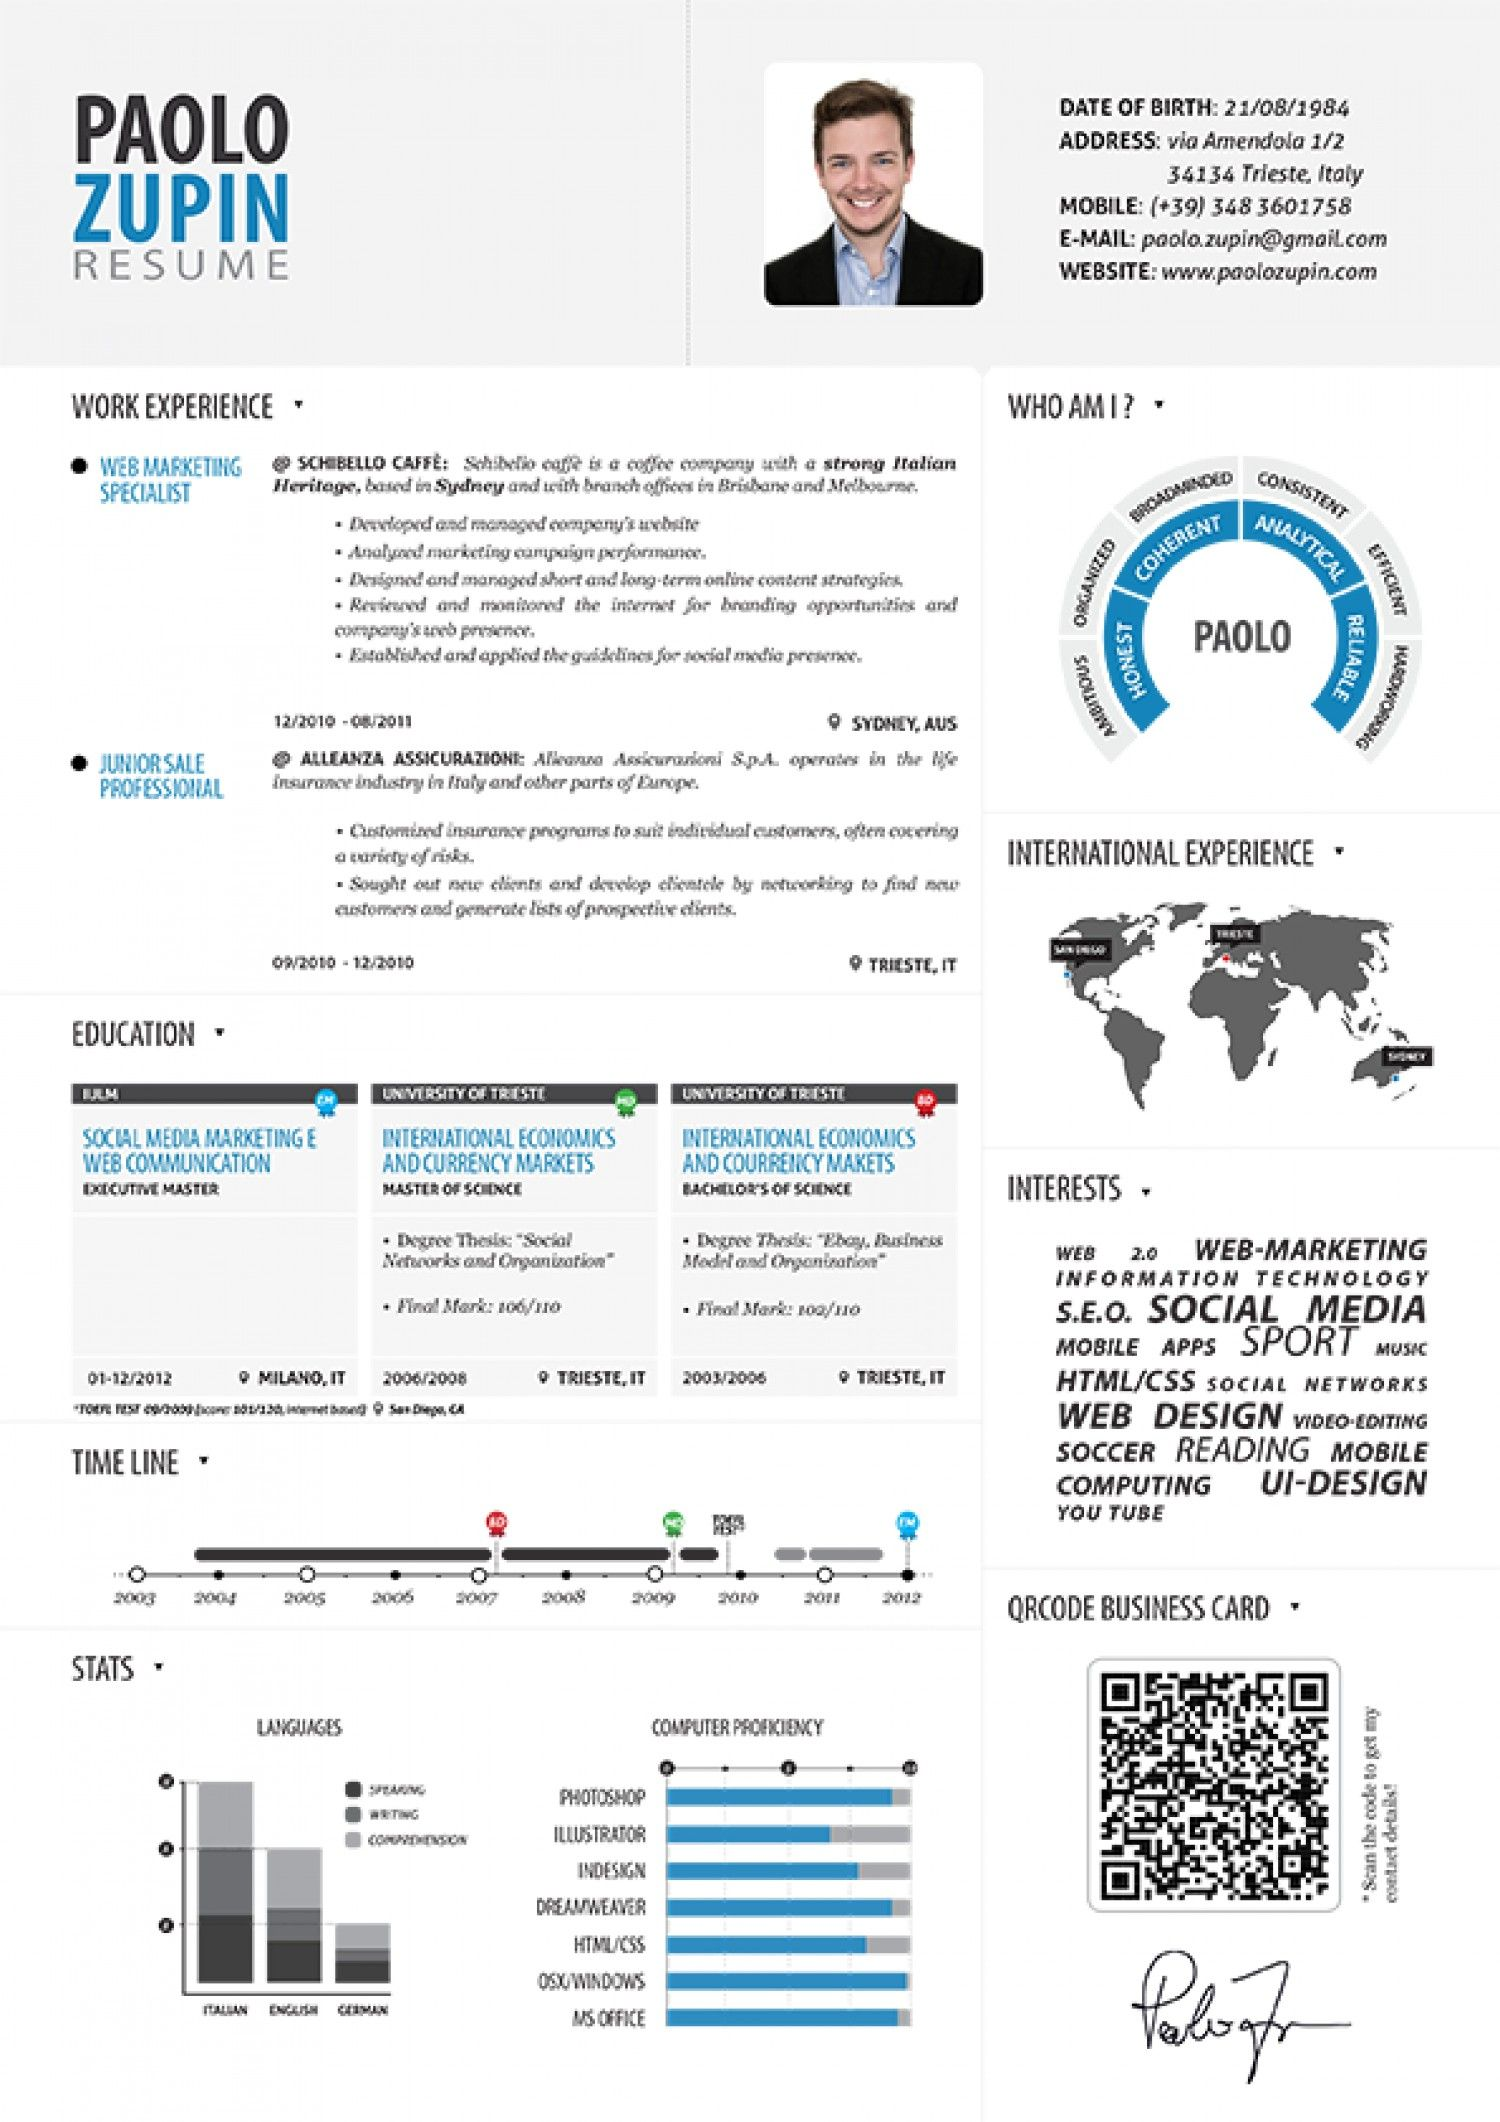 Opposenewapstandardsus  Gorgeous  Images About Resume  Cv Design On Pinterest  Infographic  With Exciting  Images About Resume  Cv Design On Pinterest  Infographic Resume Resume And Resume Design With Extraordinary How To Build A Free Resume Also Criminal Justice Resume Objective In Addition Staff Auditor Resume And Resumes For Teenagers As Well As Latex Resume Tutorial Additionally Industrial Resume From Pinterestcom With Opposenewapstandardsus  Exciting  Images About Resume  Cv Design On Pinterest  Infographic  With Extraordinary  Images About Resume  Cv Design On Pinterest  Infographic Resume Resume And Resume Design And Gorgeous How To Build A Free Resume Also Criminal Justice Resume Objective In Addition Staff Auditor Resume From Pinterestcom